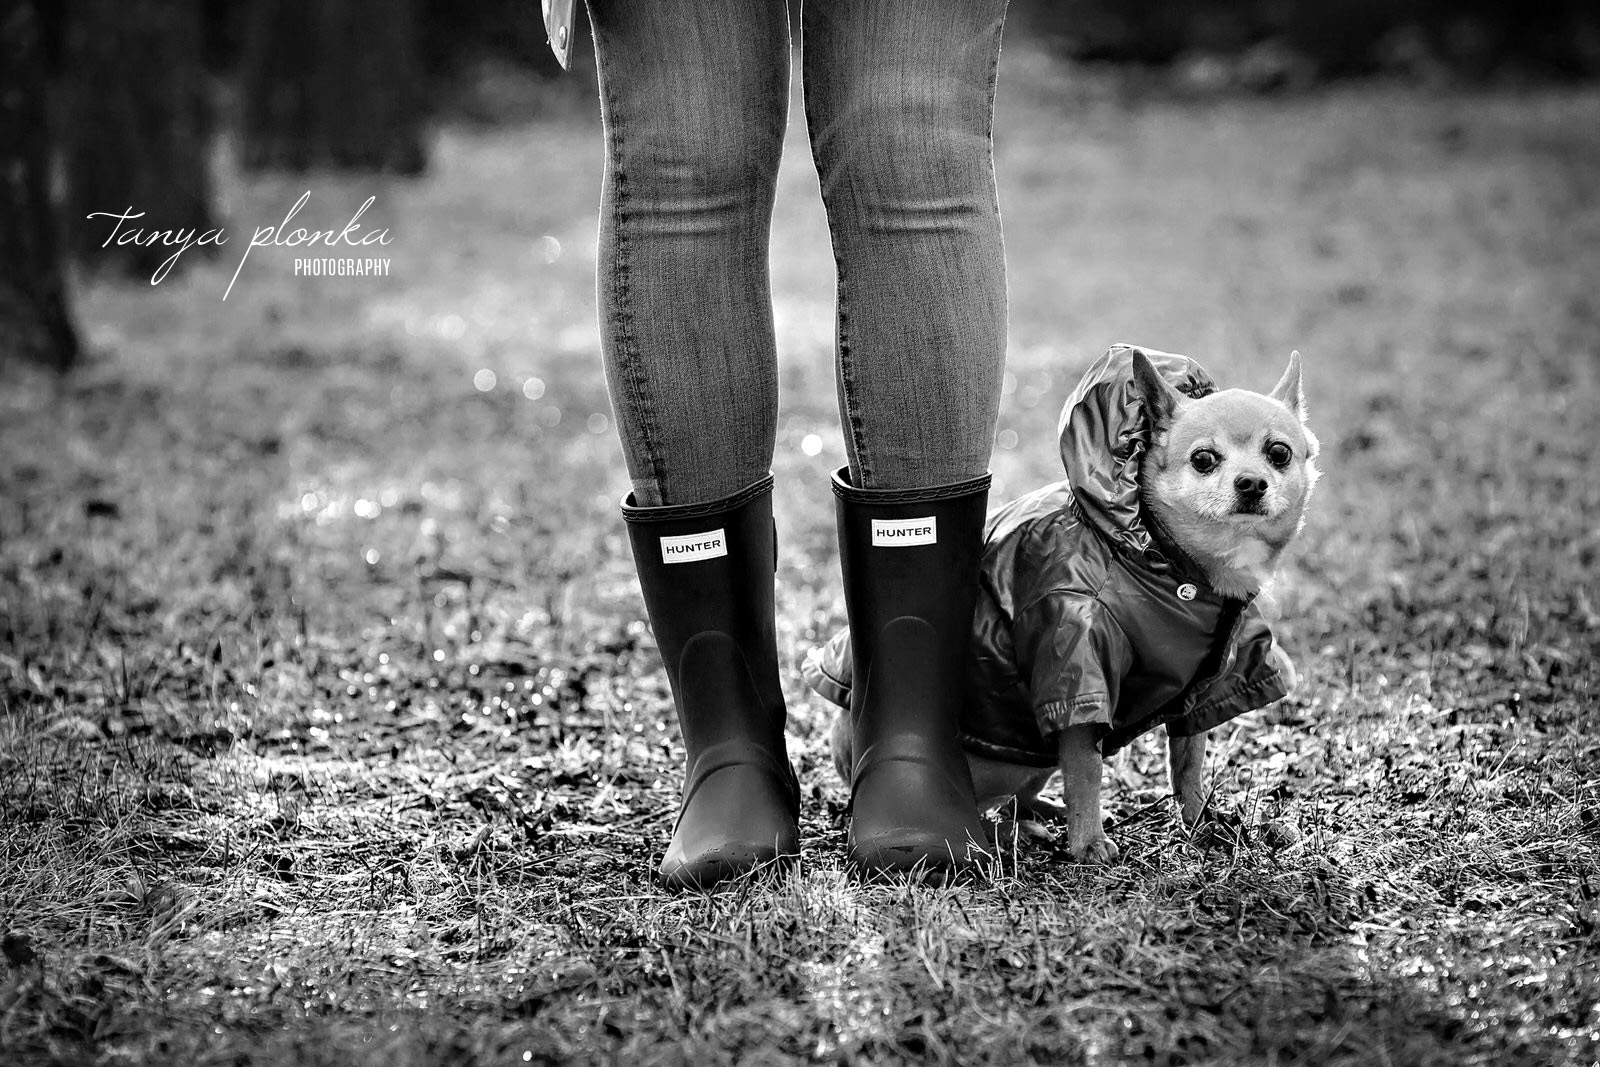 black and white photo of chihuahua wearing raincoat standing next to owner's boots